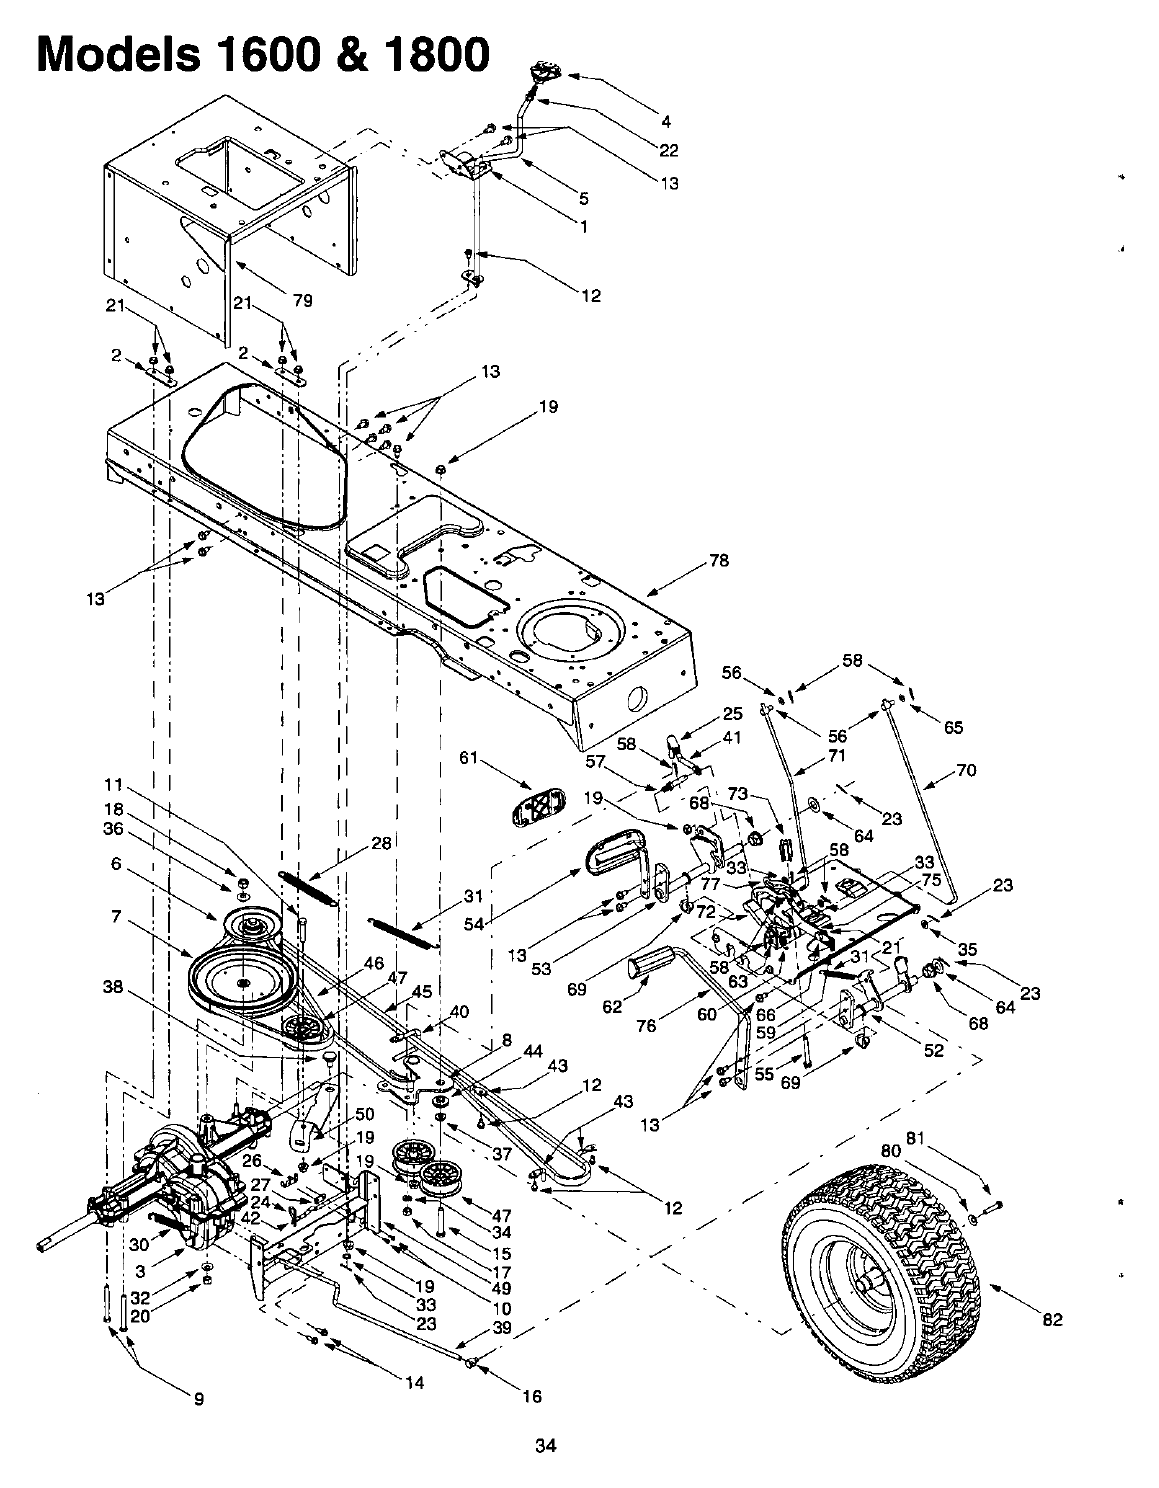 Page 34 of Cub Cadet Lawn Mower 1800 User Guide